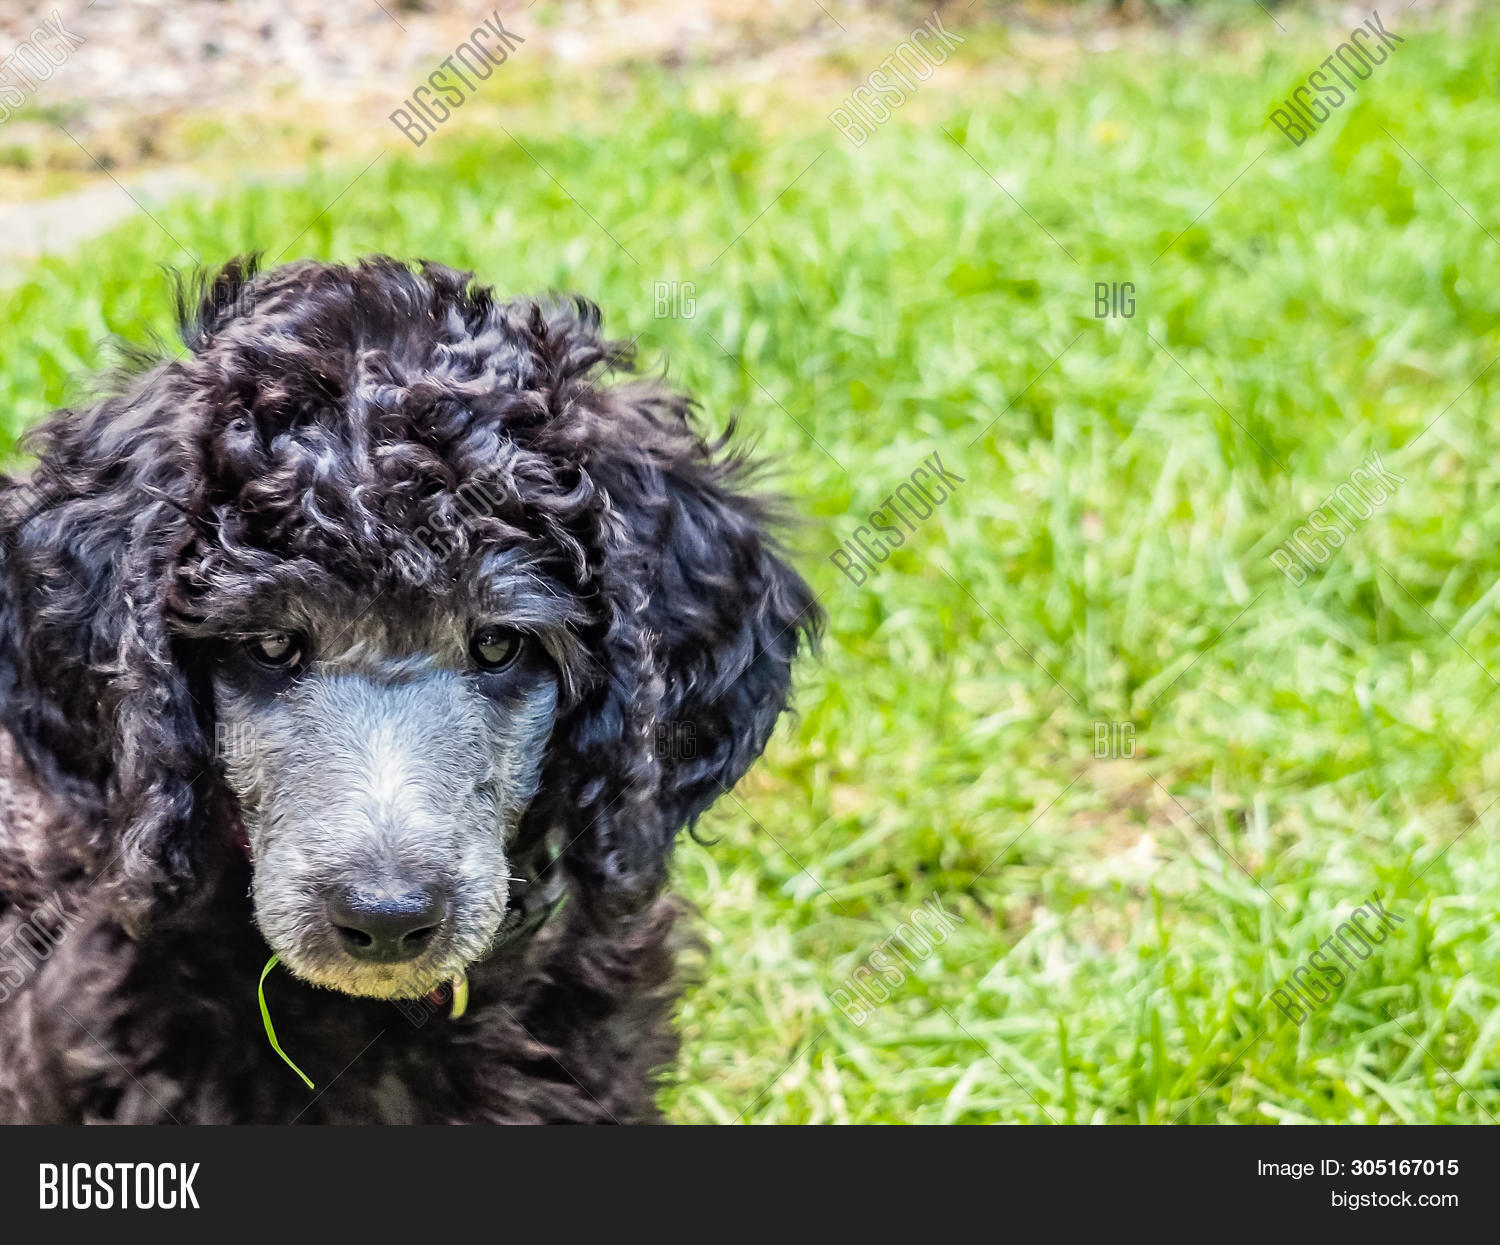 Standard Poodle Puppy Image Photo Free Trial Bigstock